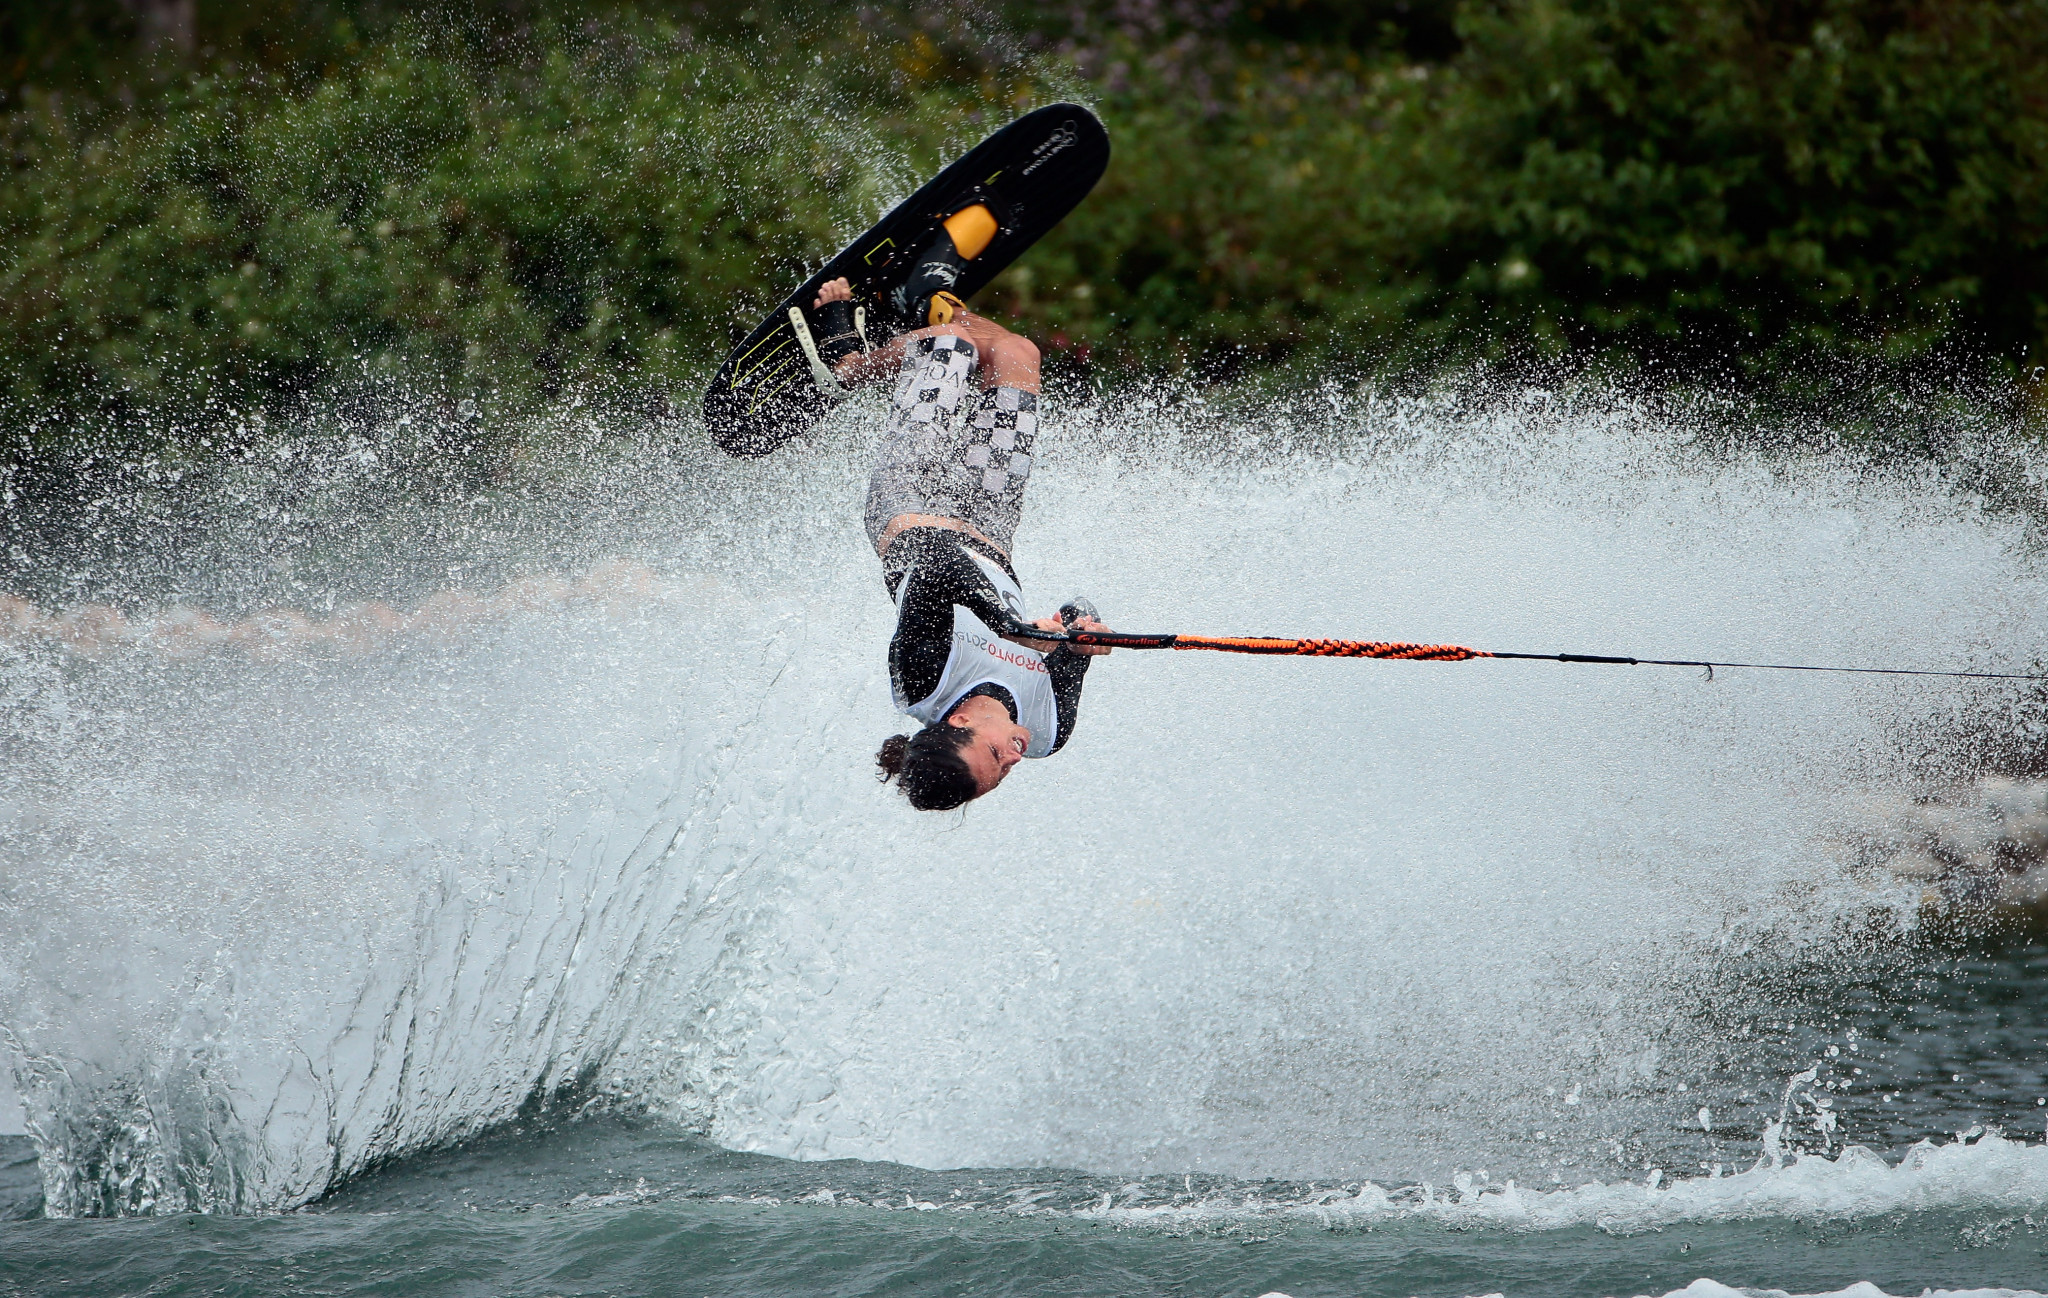 Adam Pickos led the US to the team title at the Water Ski World Championships ©Getty Images